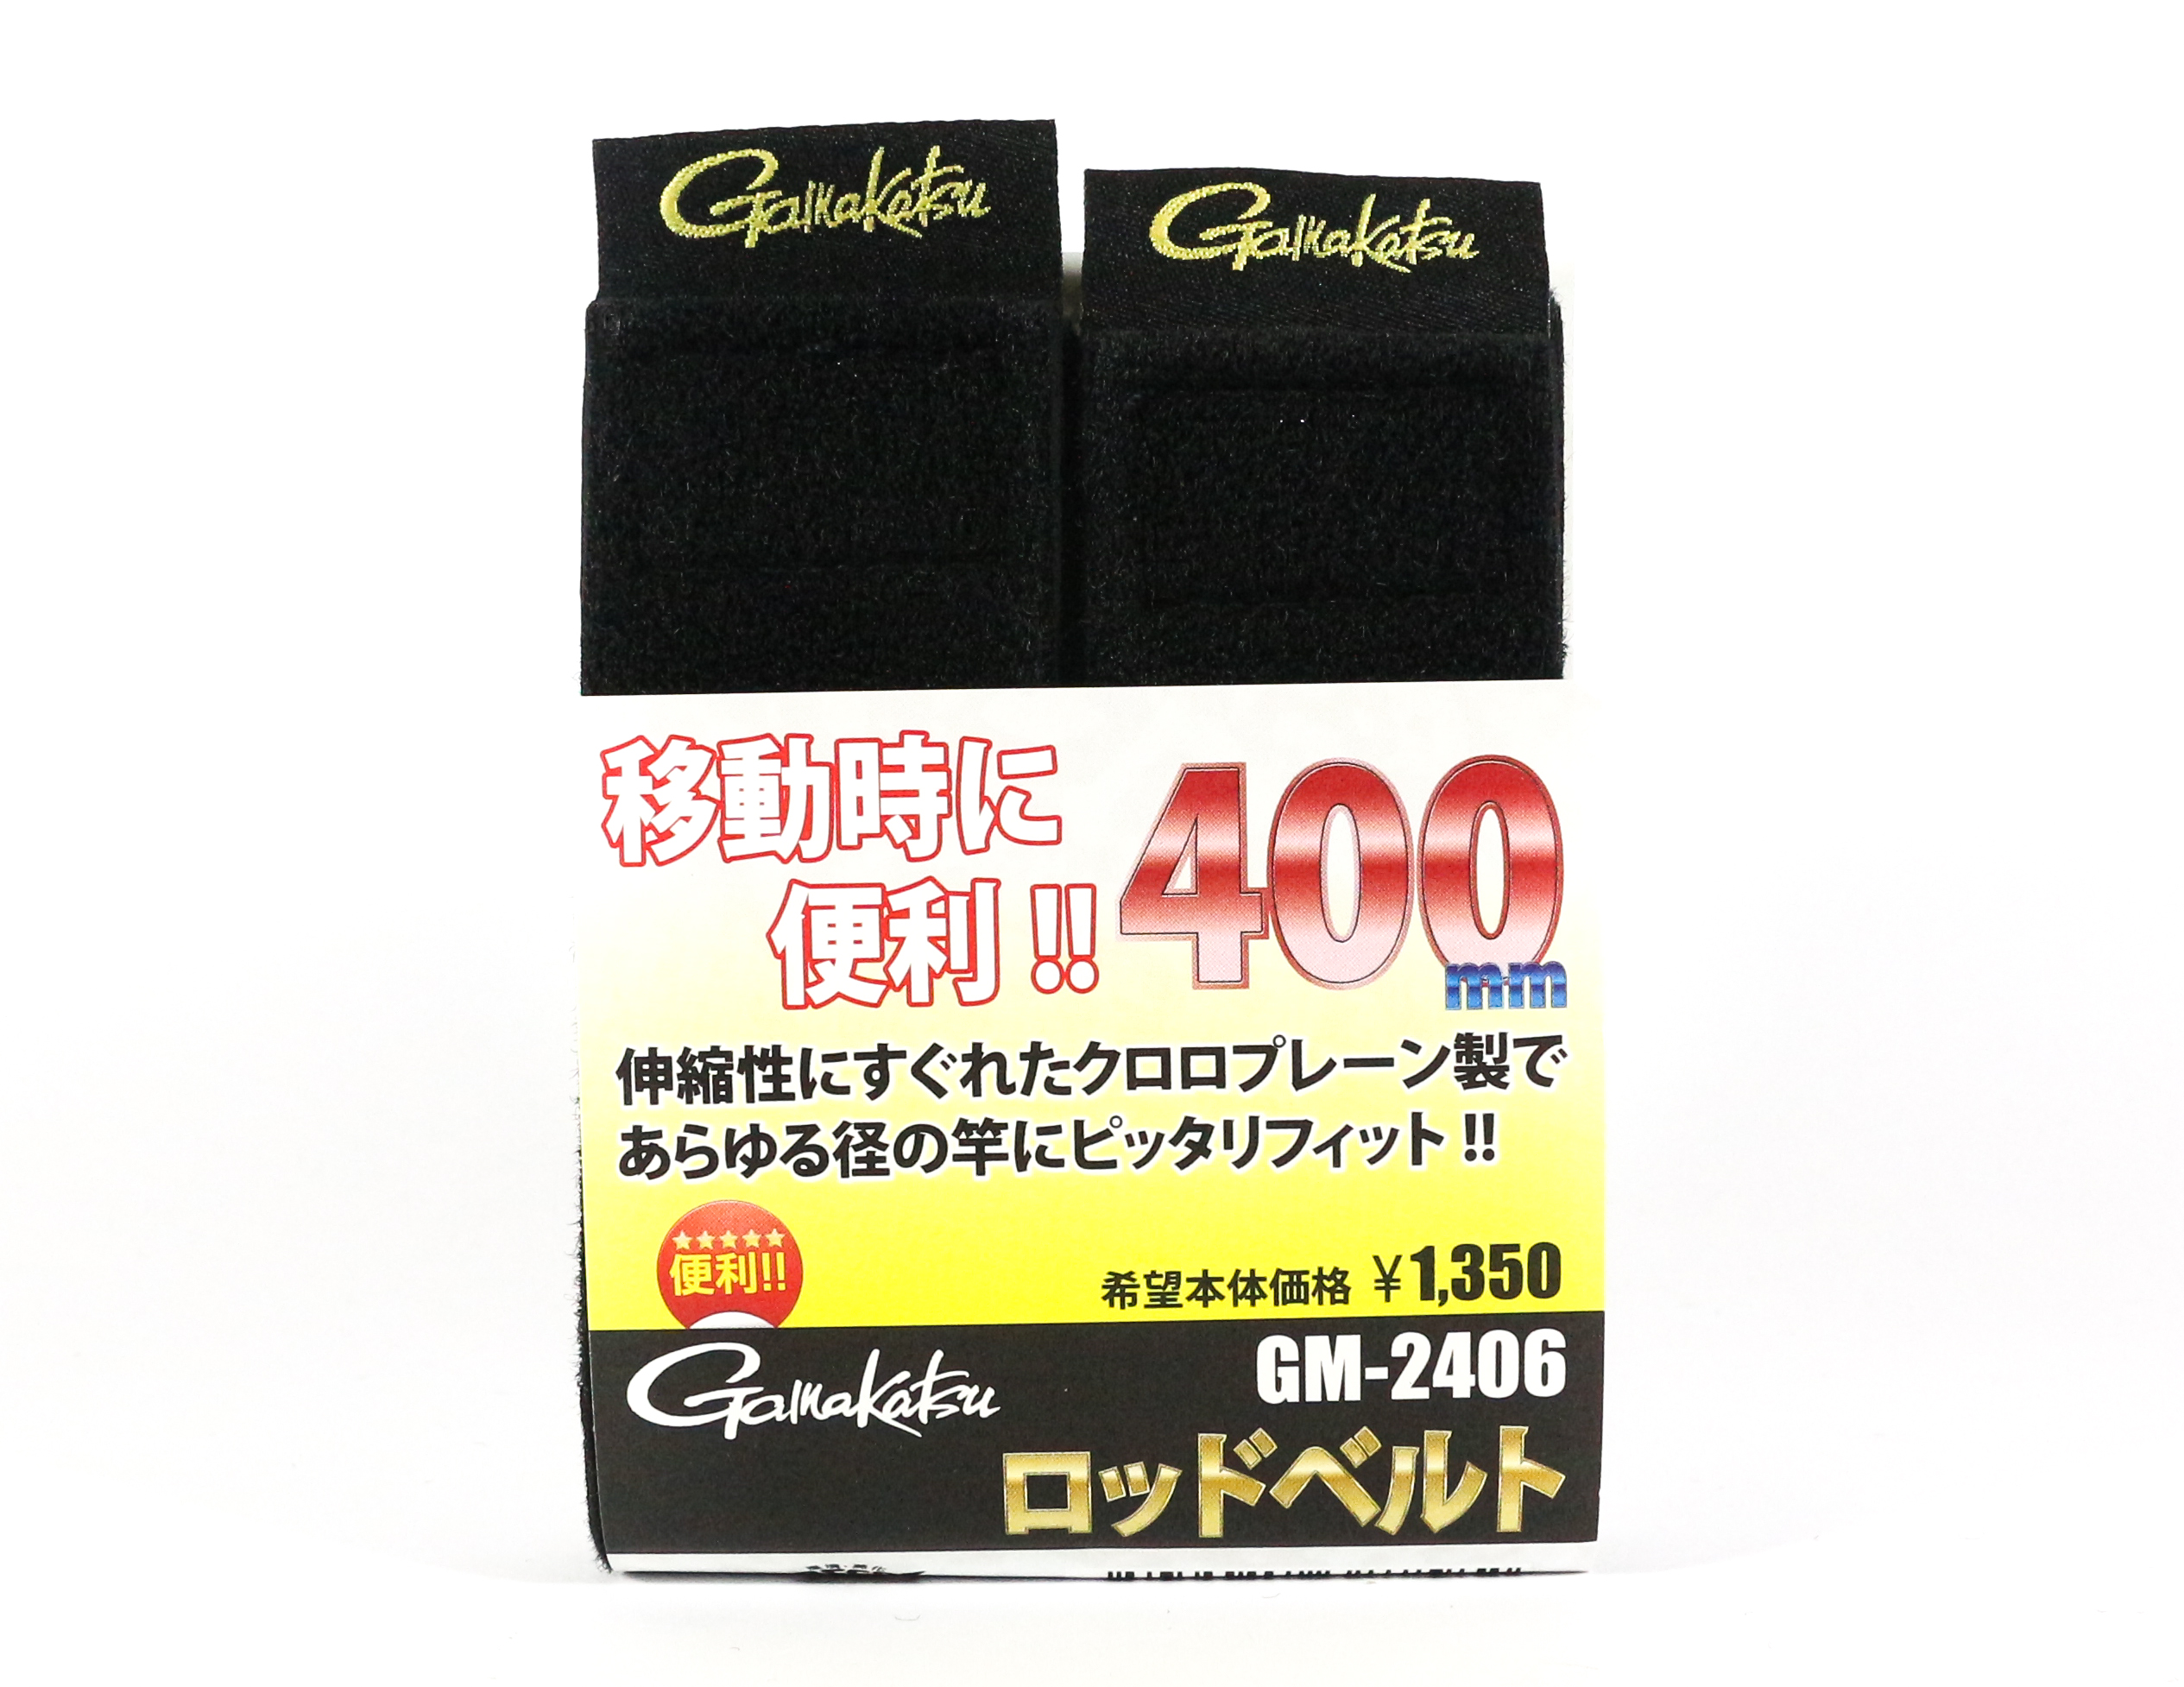 Gamakatsu GM-2406 Rod Belt Strap 2 Pieces 40 x 400 mm Black (7582)